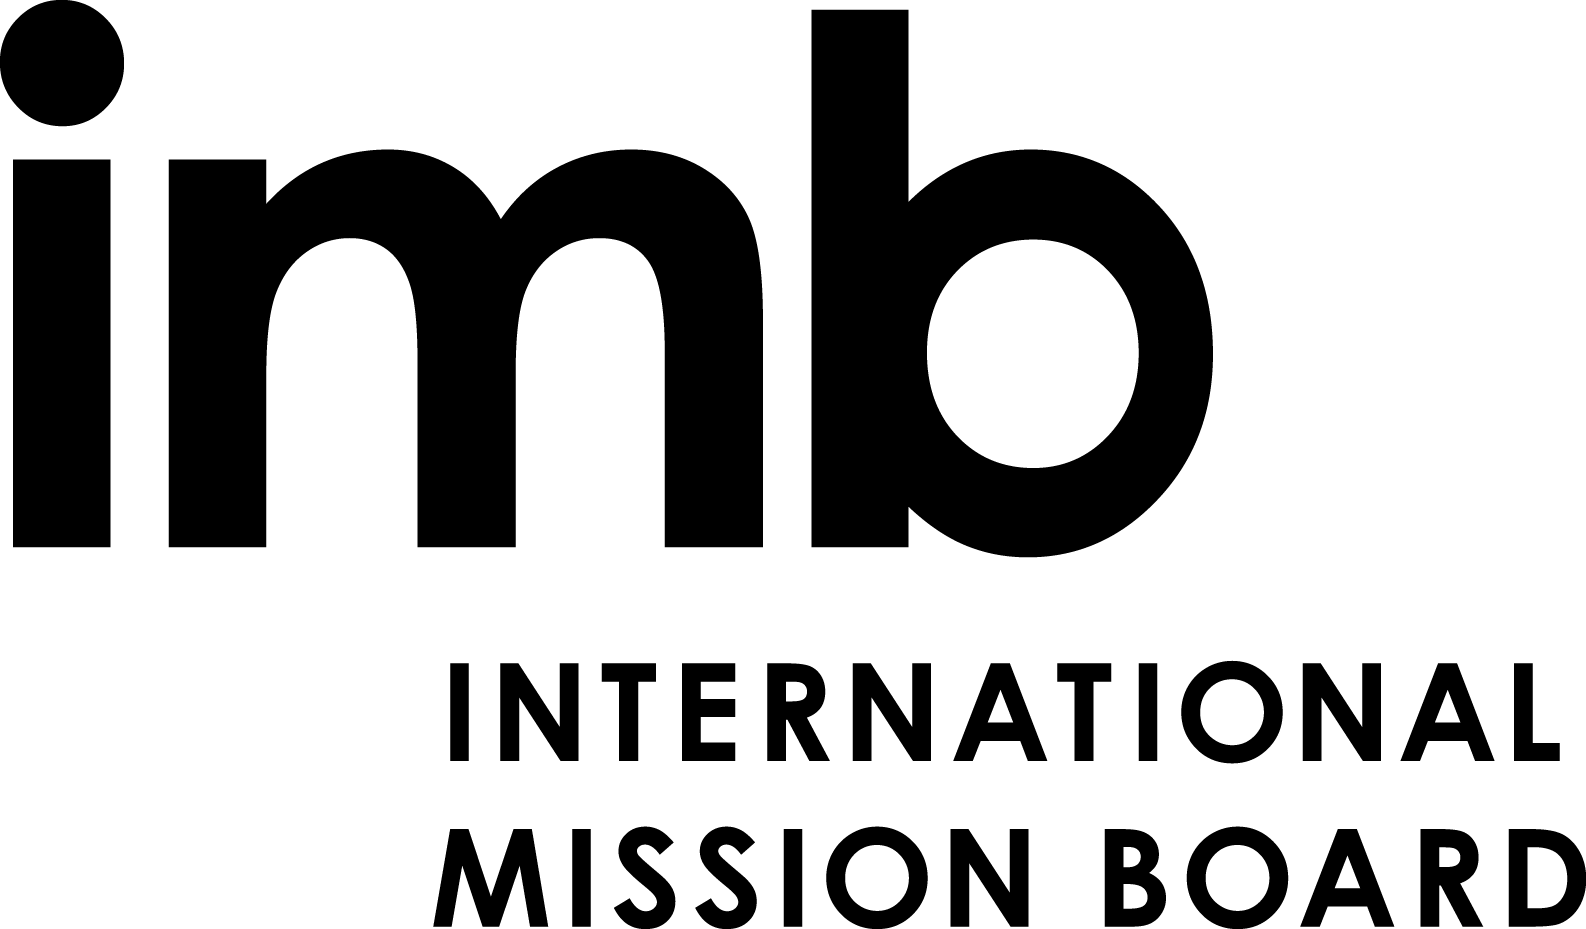 http://brittcreative.co/wp-content/uploads/2019/02/IMB-logo_stacked.png